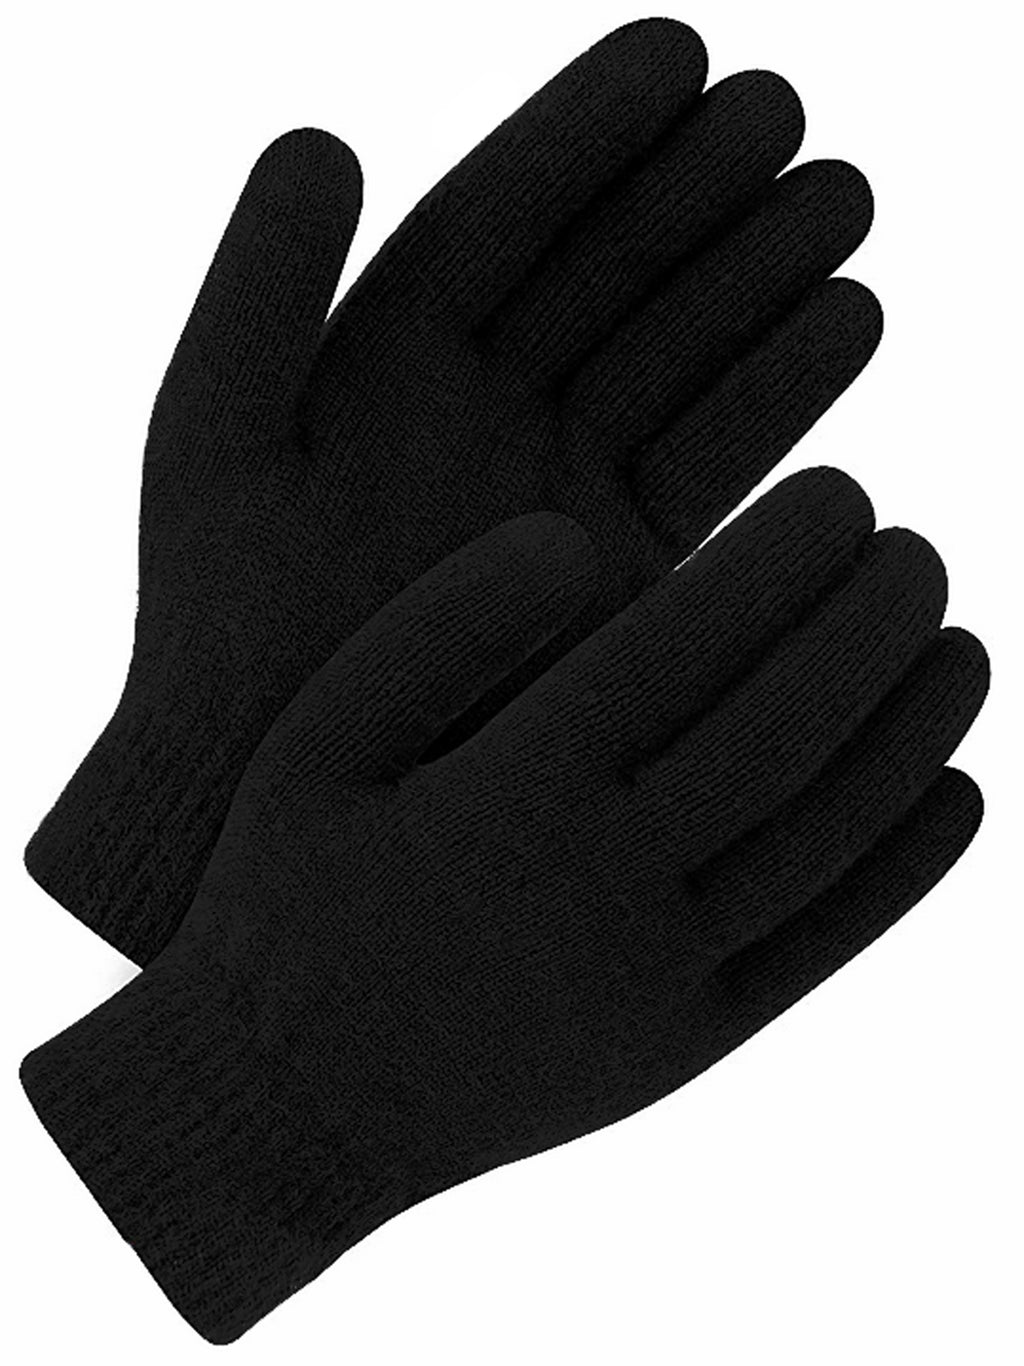 Mens Black Ultra Thermal Insulated Winter Heated Gloves